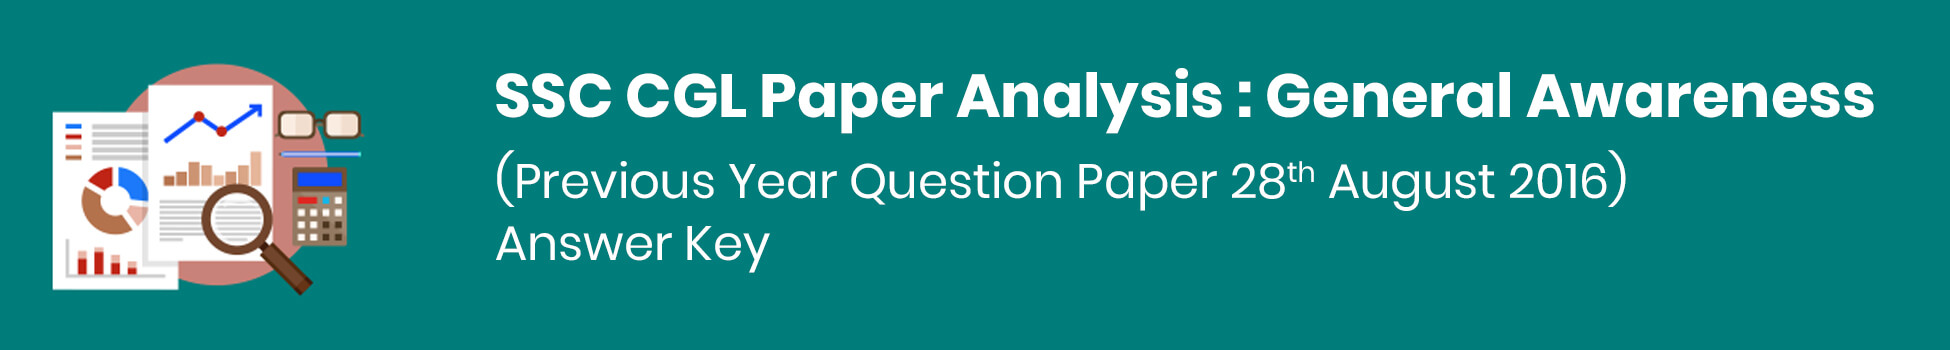 SSC CGL Paper Analysis: General Awareness(Previous Year Question Paper 28th August 2016) - Answer Key